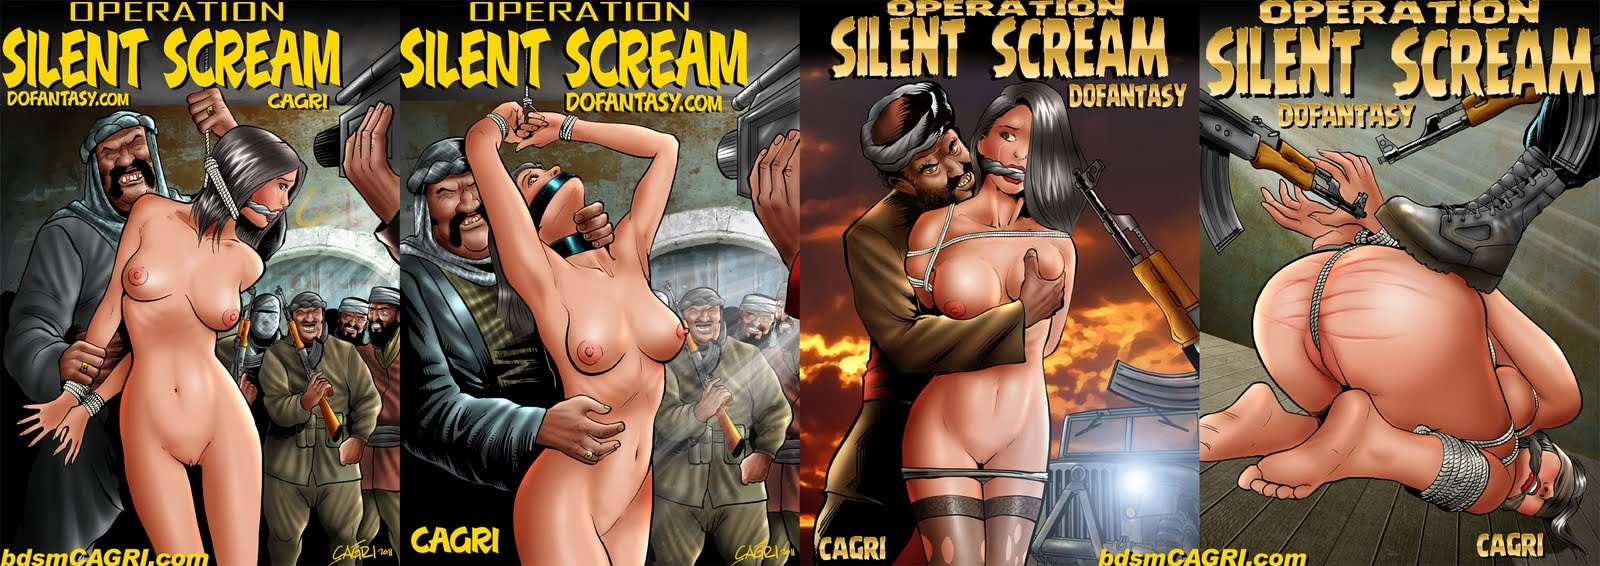 SILENT SCREAM COVER STUDIES